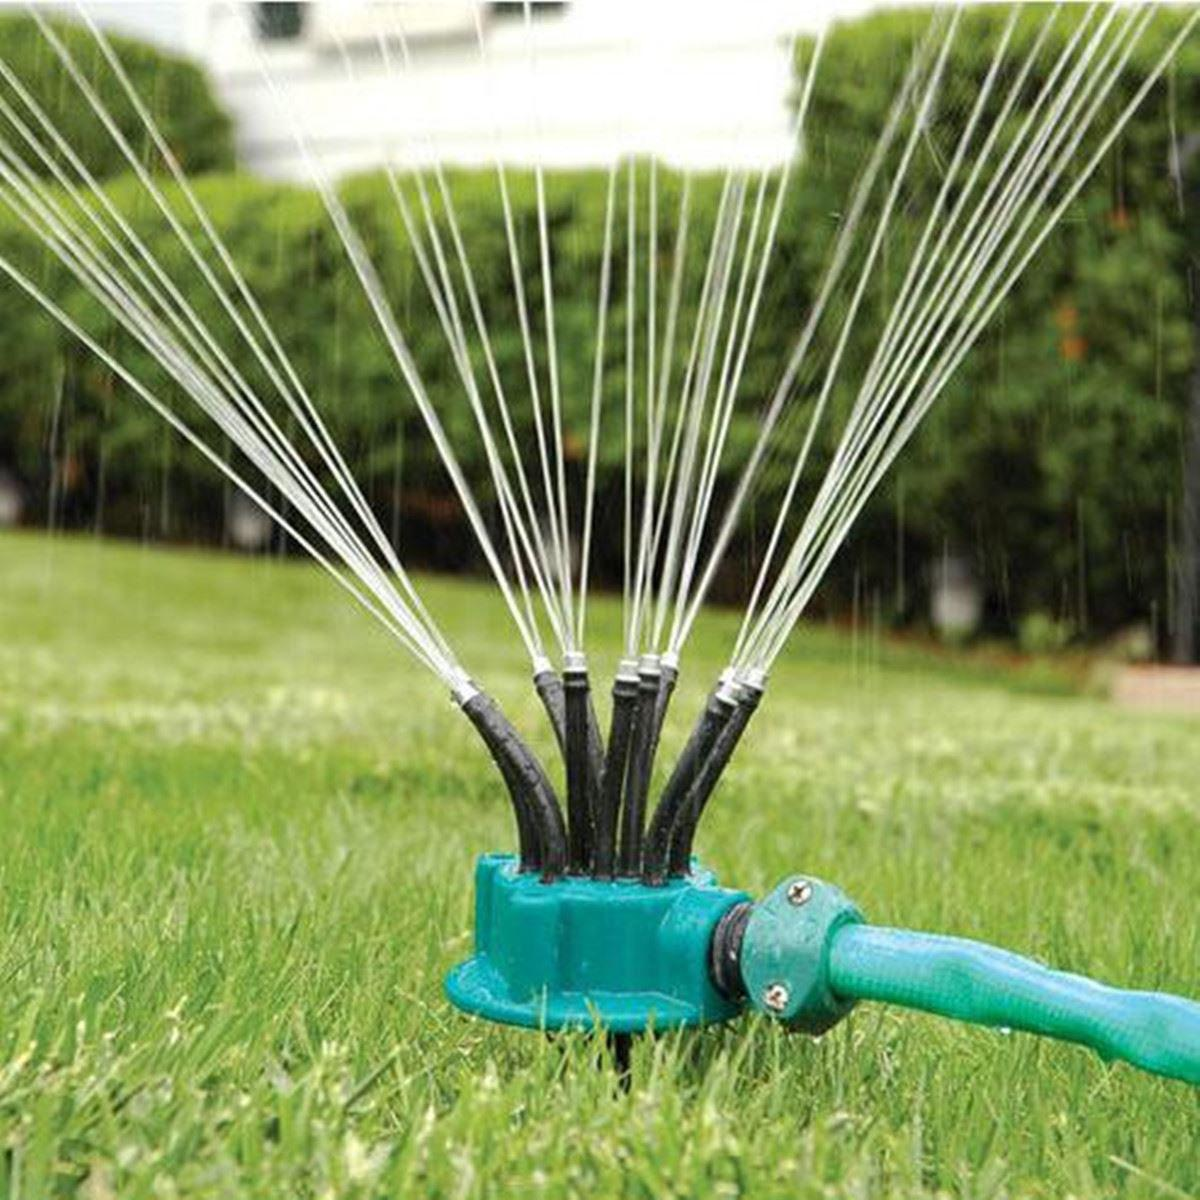 Hot Lawn Sprinkler System - Water Garden Sprinkler Head - Outdoor Automatic Sprinklers for Lawn Irrigation System Spot Sprinkler for small to medium area watering